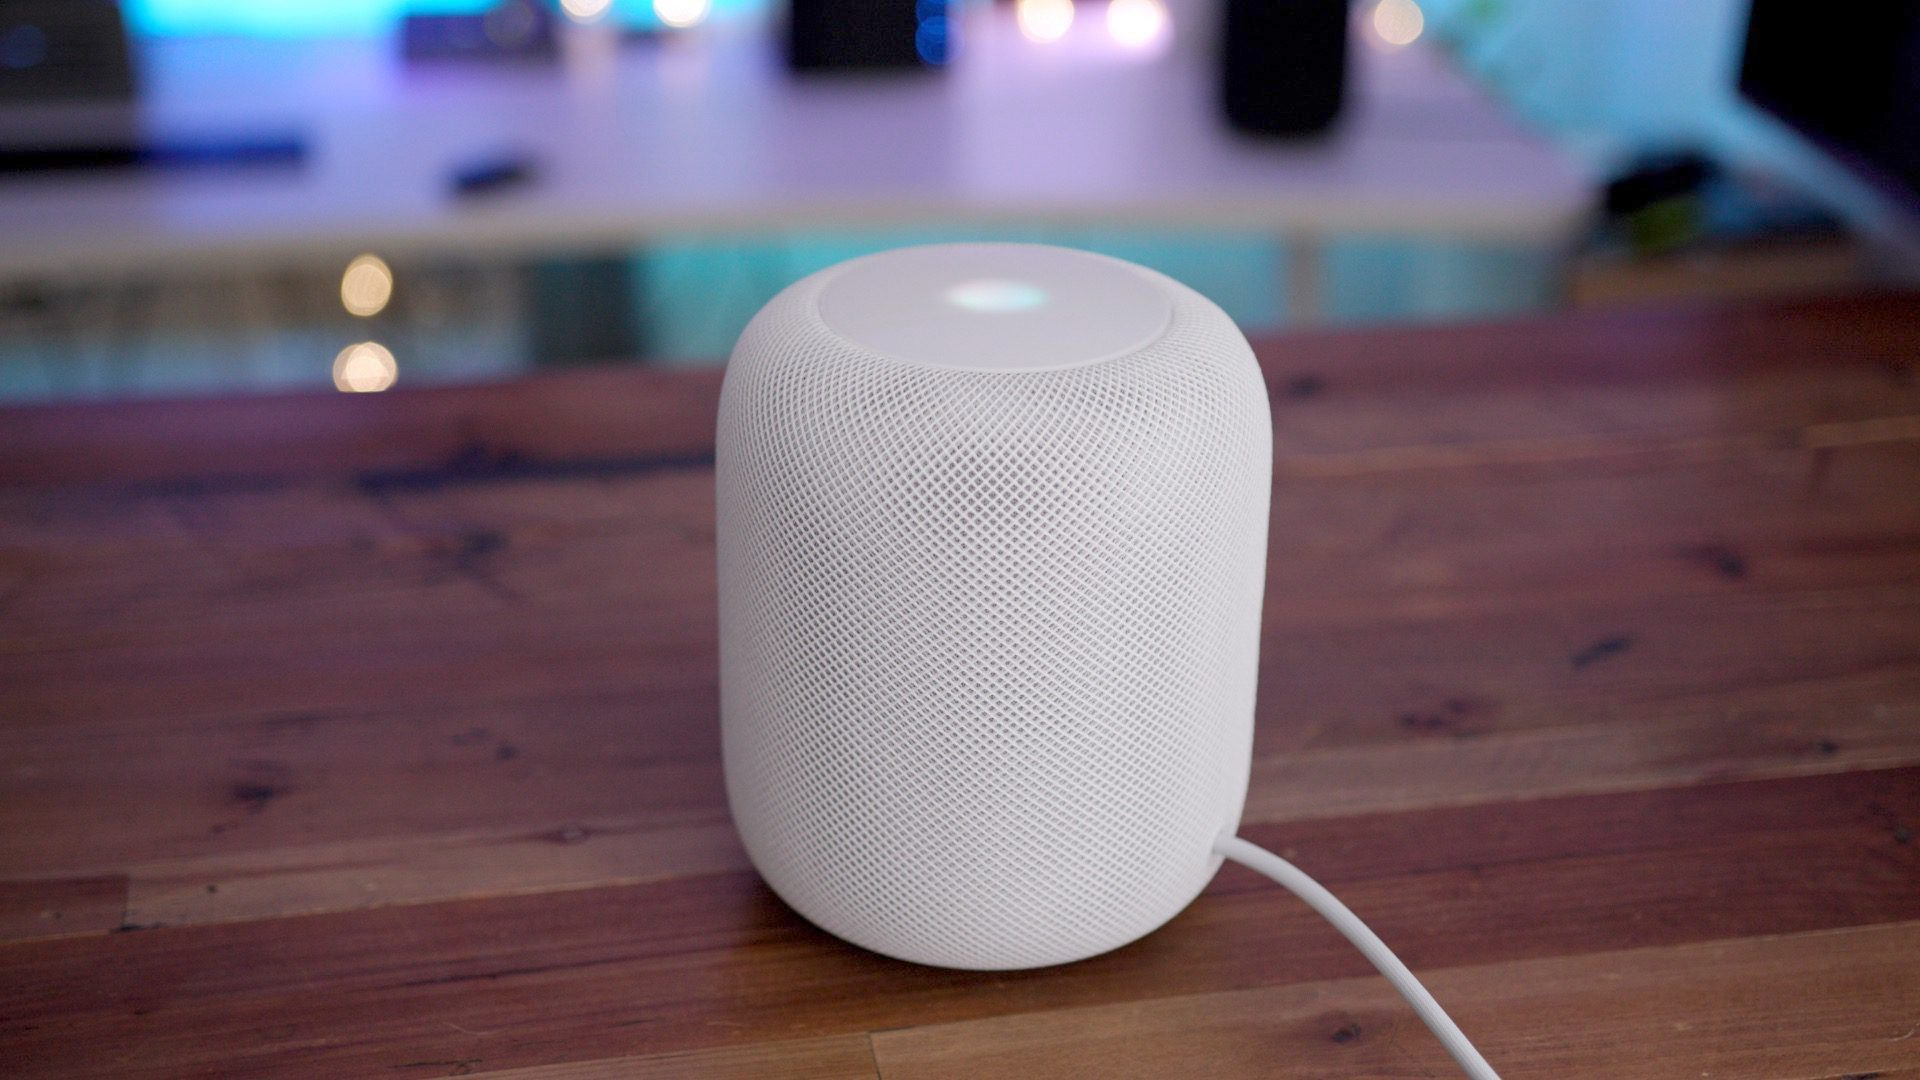 Apple details how the HomePod uses machine learning to ignore noisy surroundings for Siri requests